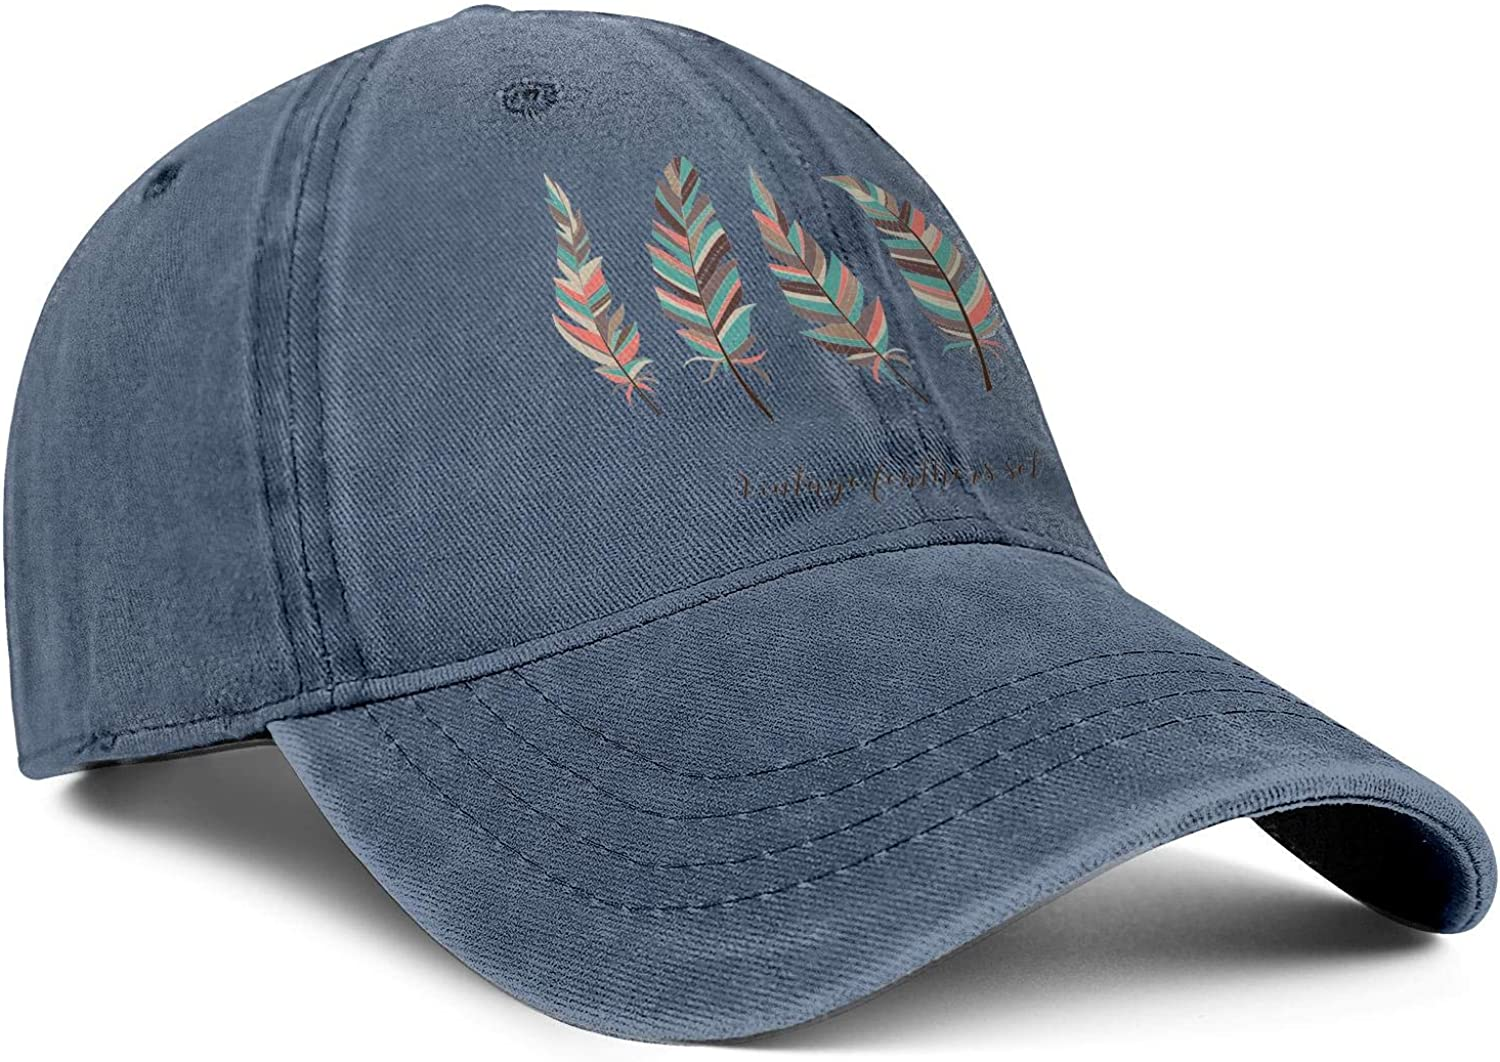 LiyUKo Snapback Hats for Women//Men Five Elegant Feathers Adjustable Style Tennis Hats